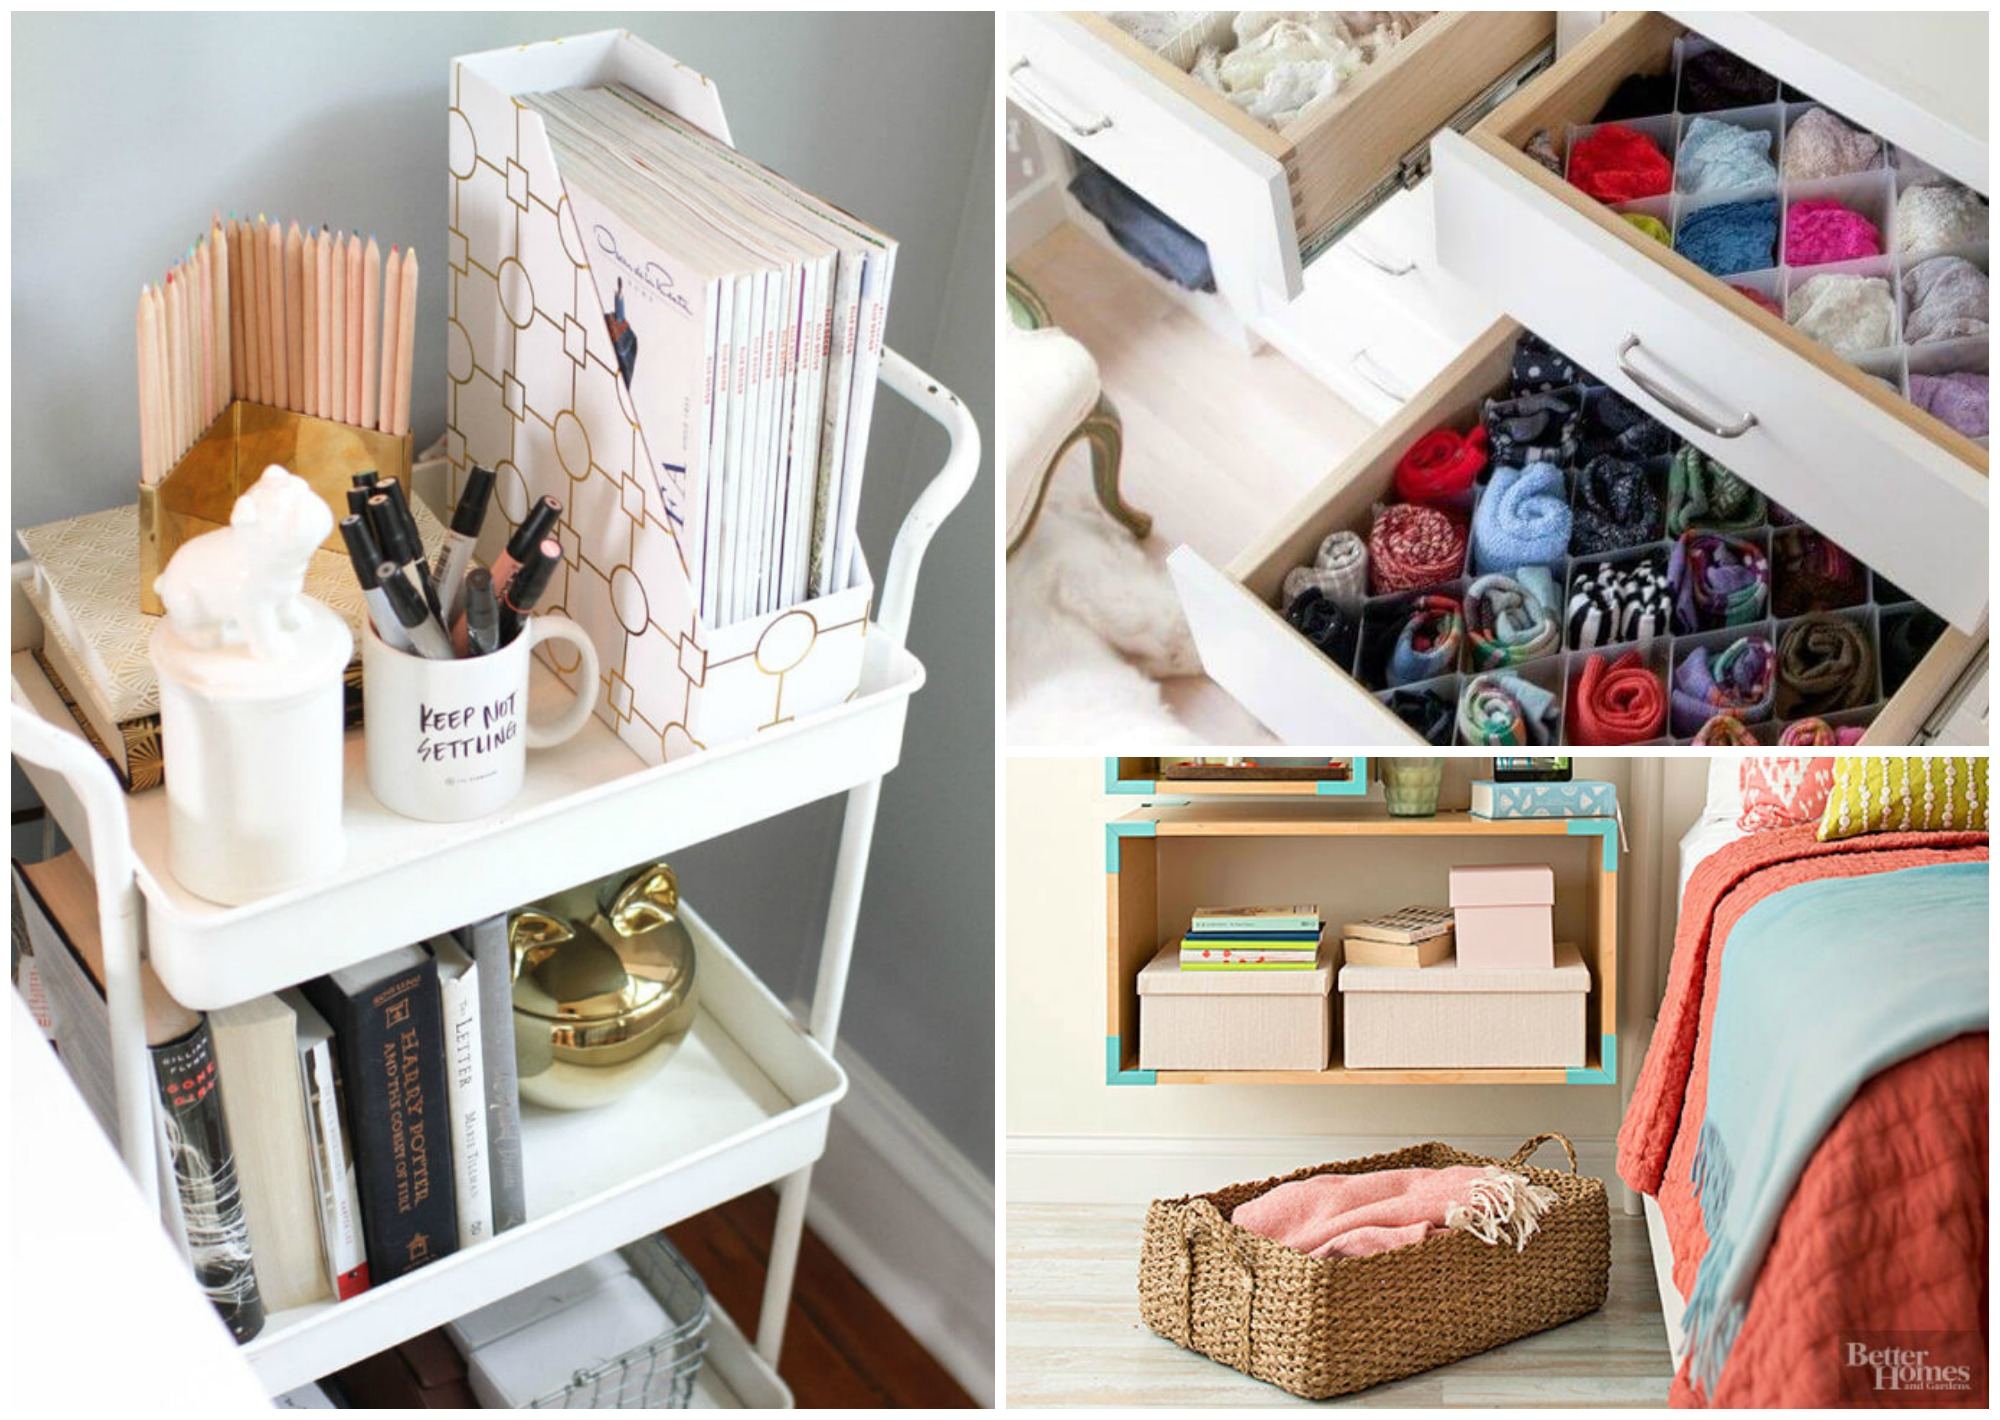 9 Super Efficient Ways to Organize Your Small Bedroom